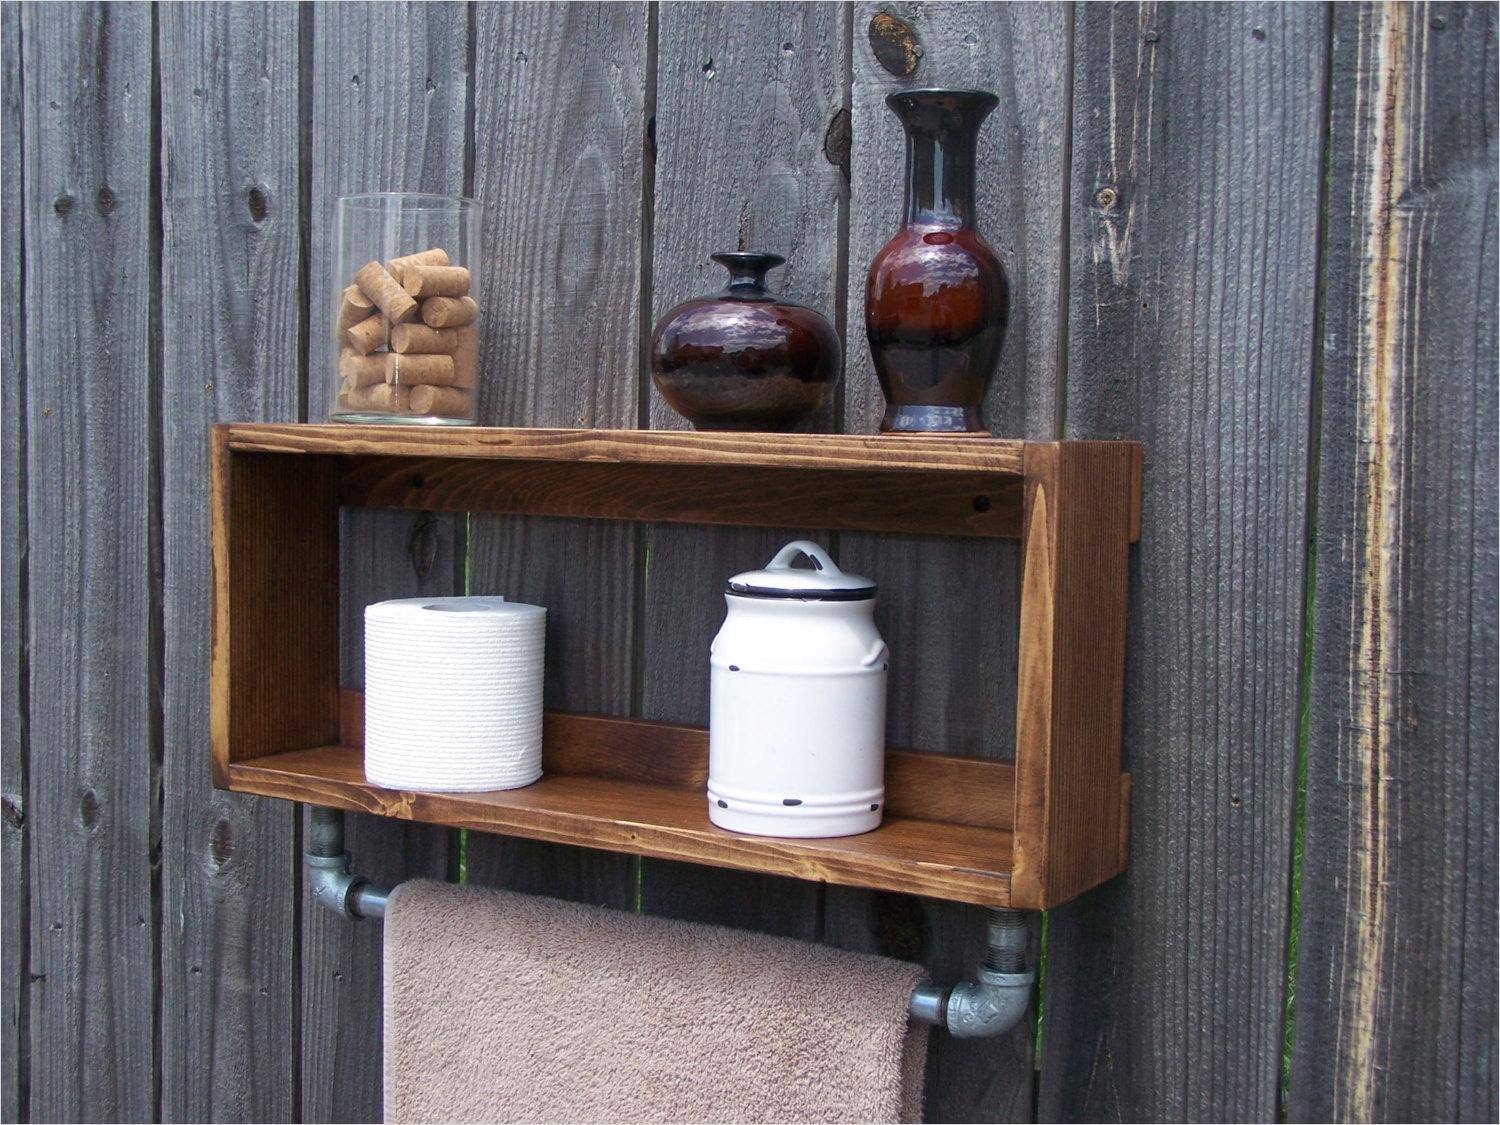 44 Creative Ideas Rustic Bathroom Walls Shelf 61 Industrial Rustic Bathroom Wall Shelf with 18 Inch Metal towel 6